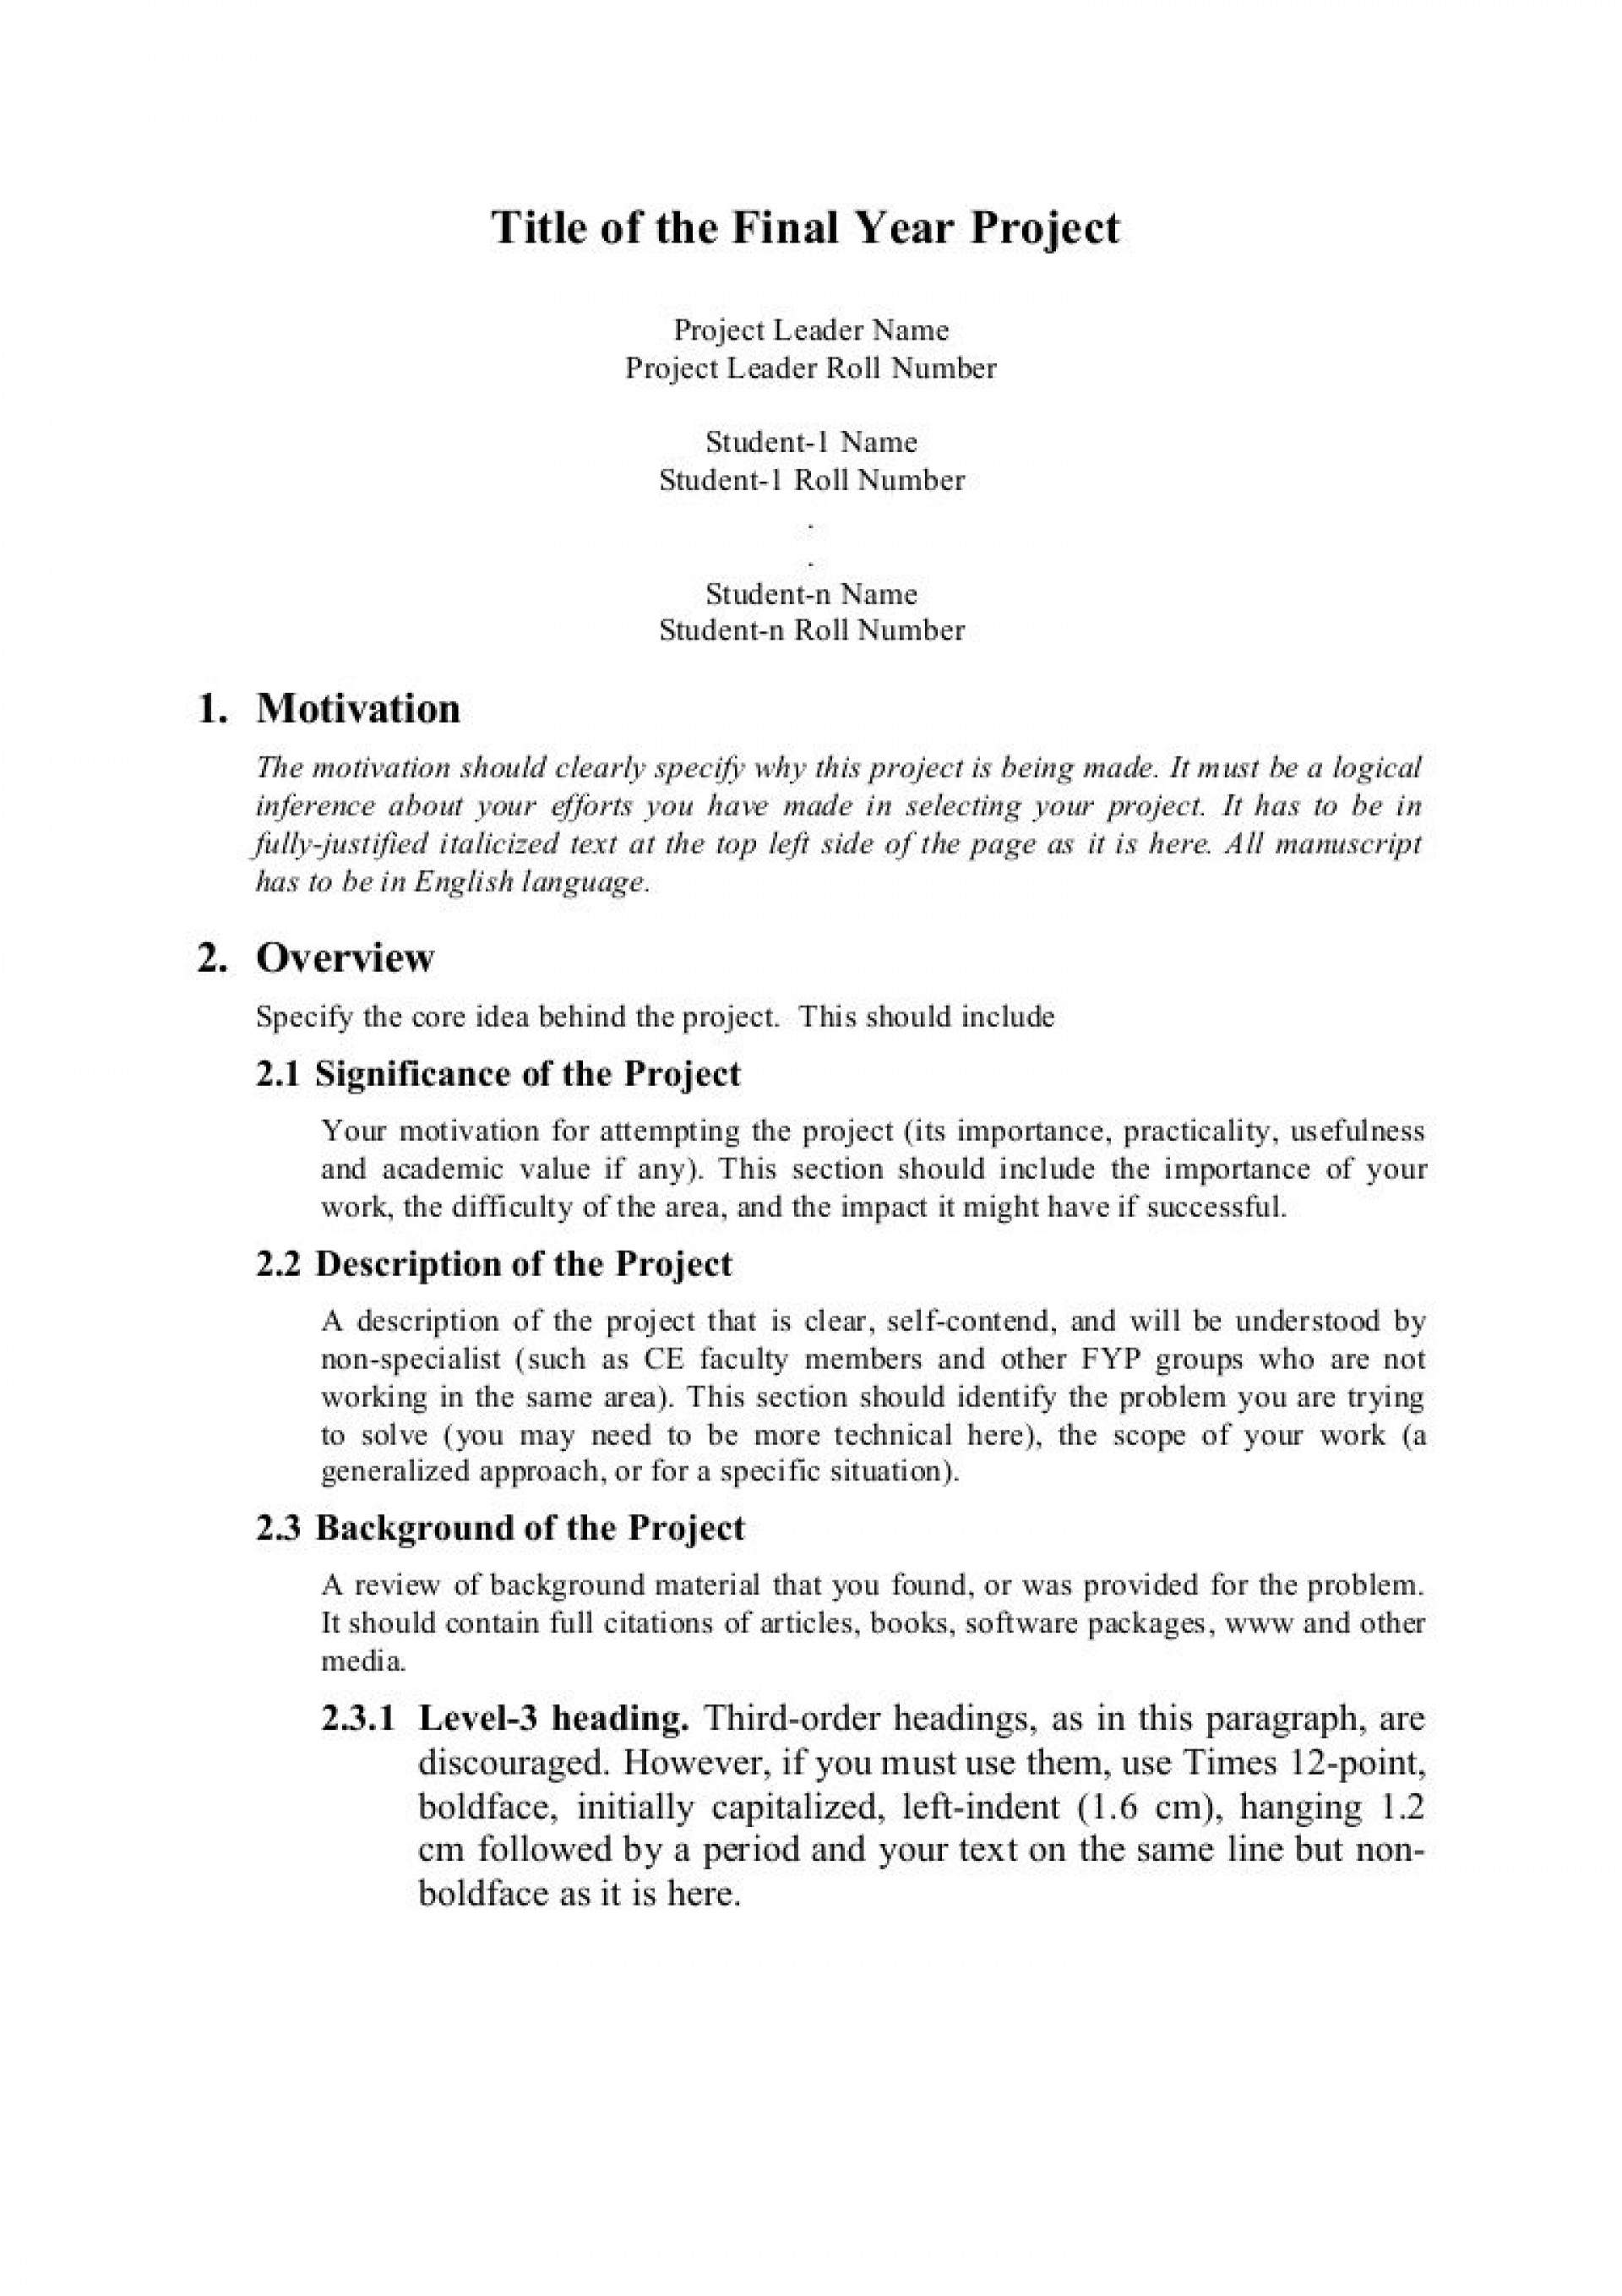 008 Magnificent Research Project Proposal Example Pdf Inspiration  Format1920